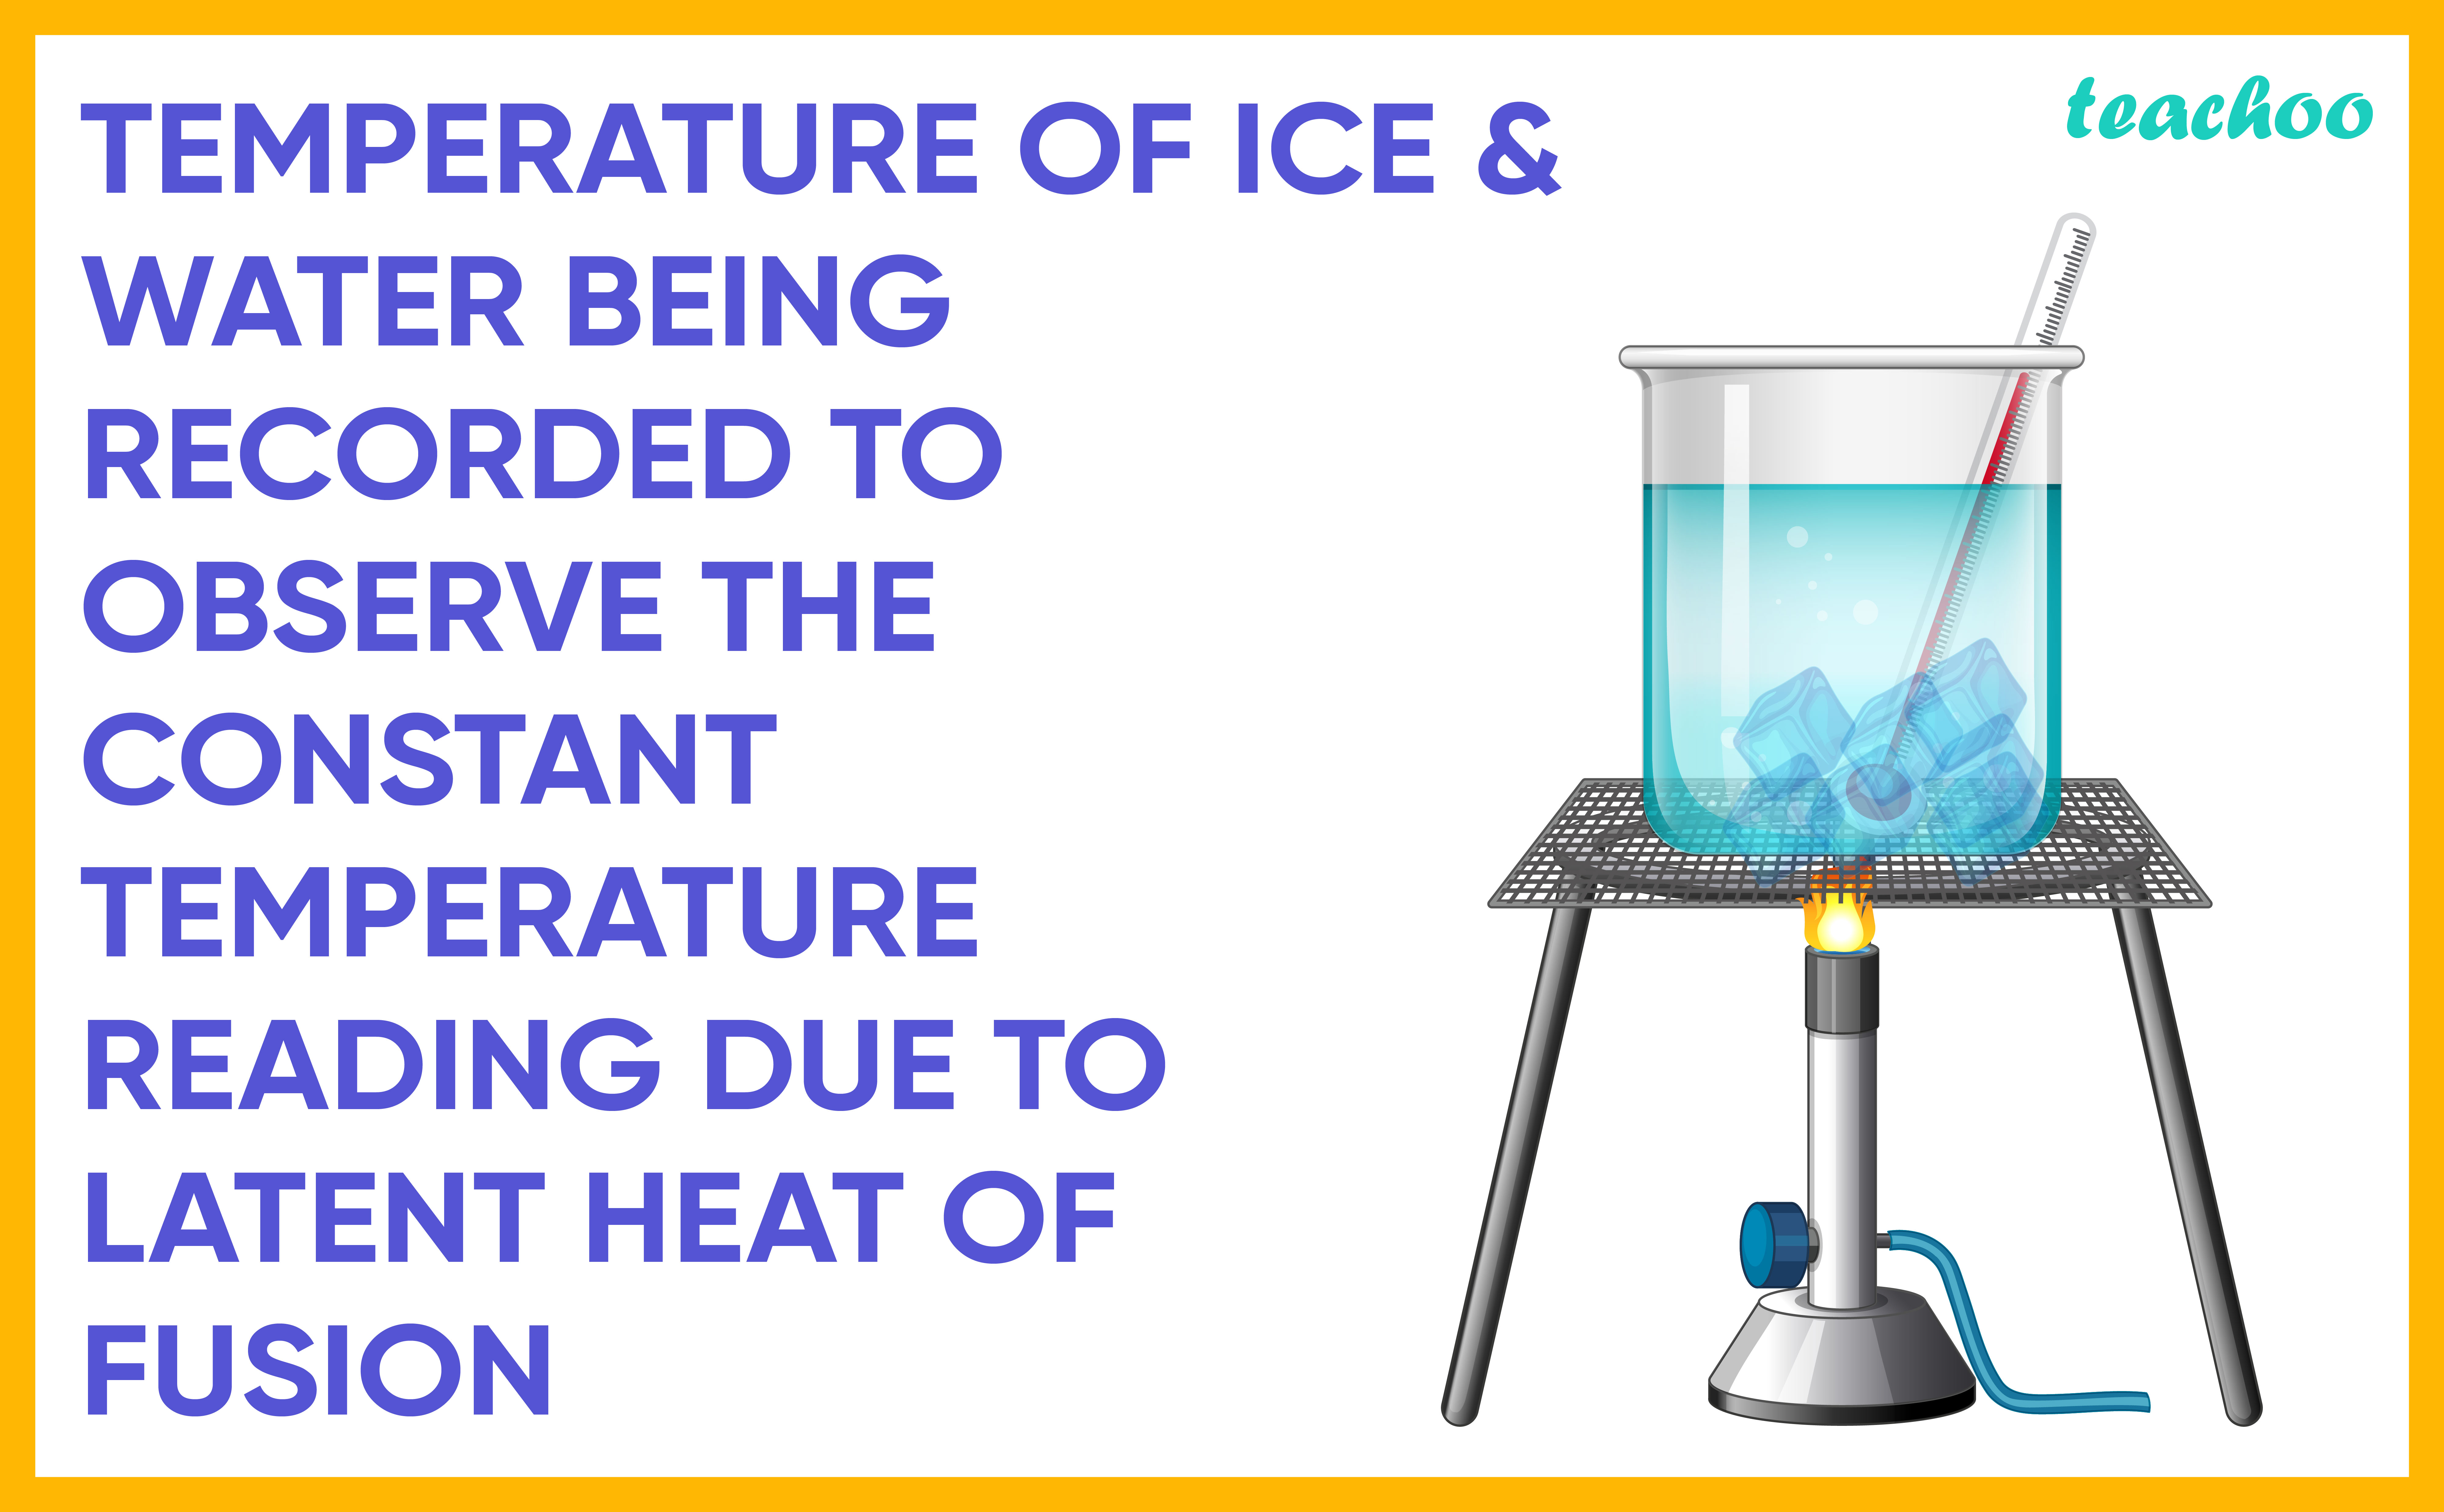 Temperature of ice and water being recorded to observe the constant temperature reading due to latent heat of fusion-Teachoo-01.jpg